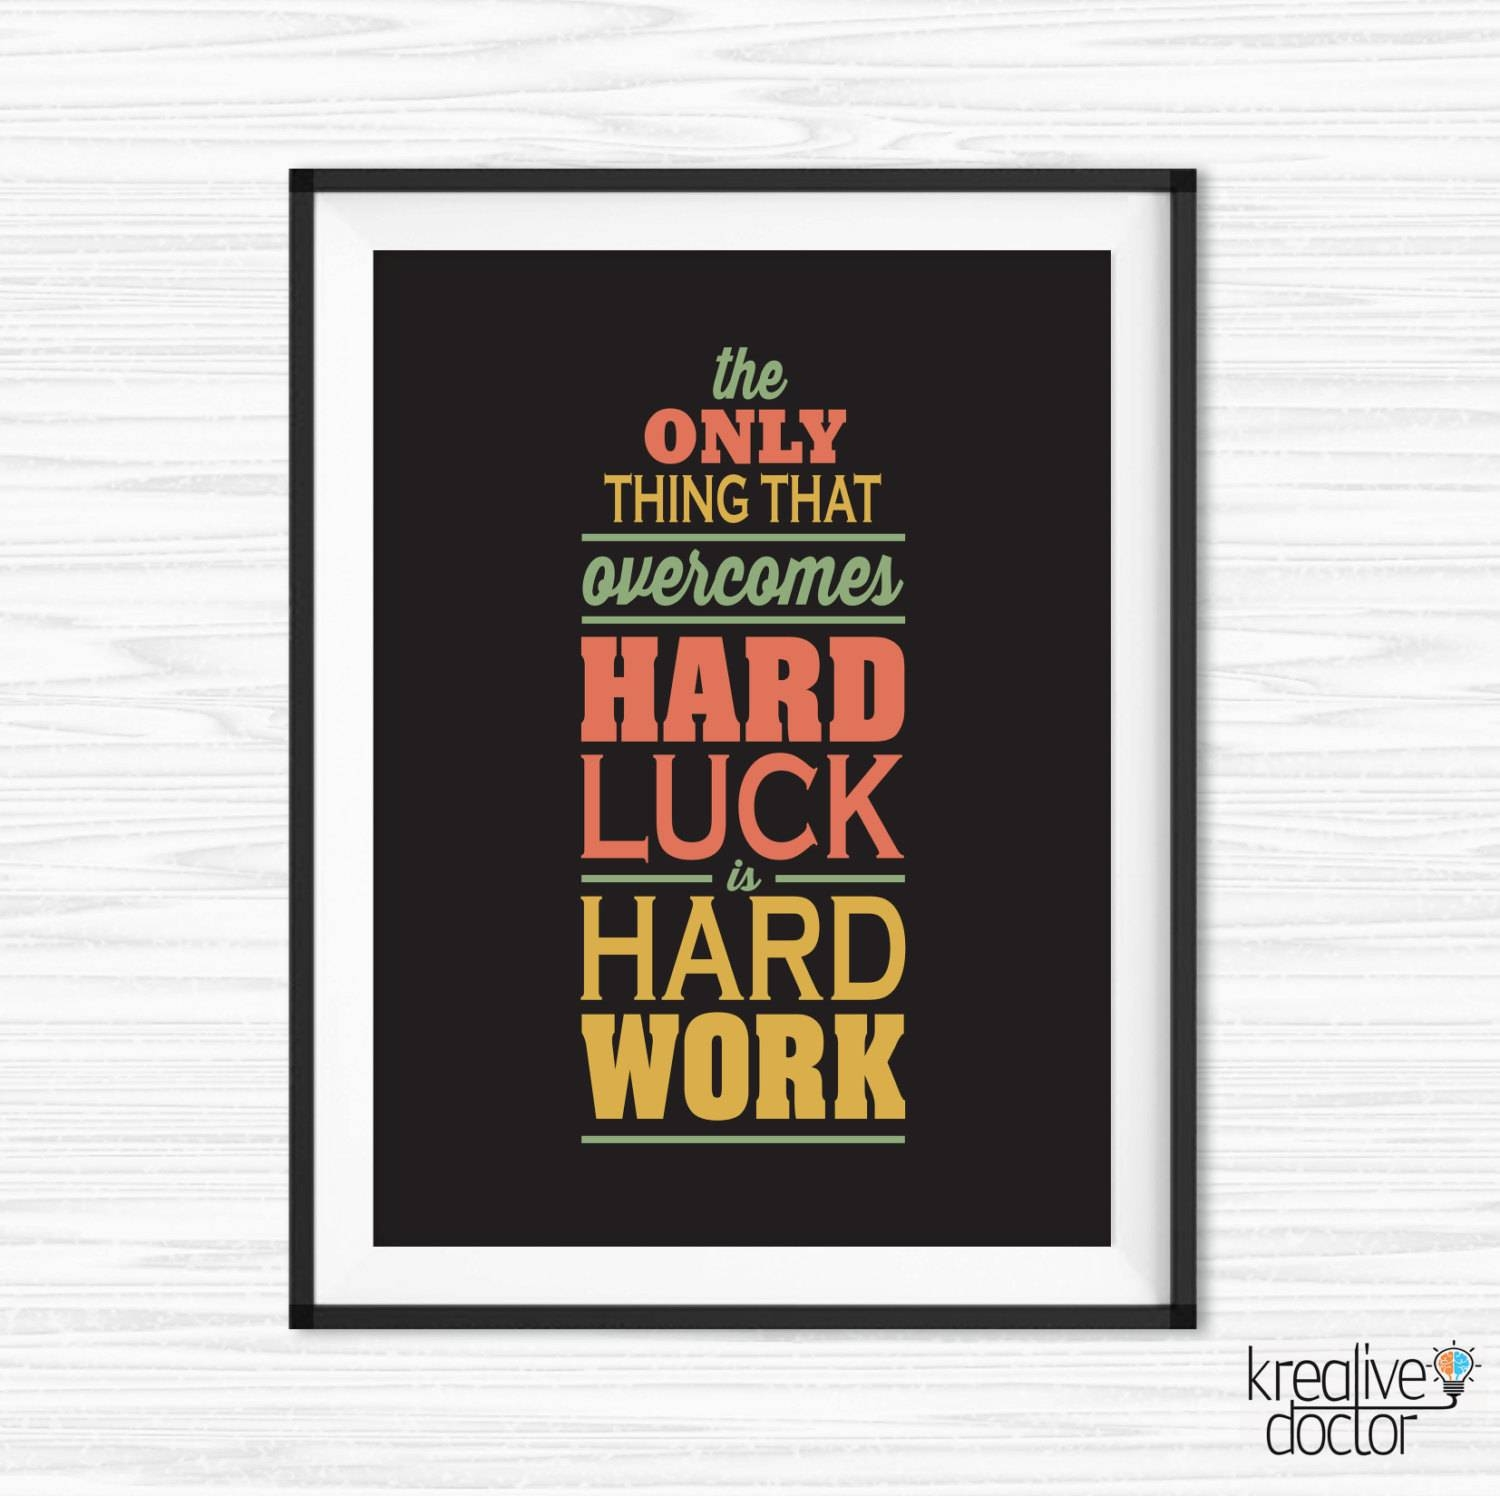 Work Hard Quote Office Wall Art Motivational Wall Decor With Regard To Most Up To Date Inspirational Canvas Wall Art (View 20 of 20)